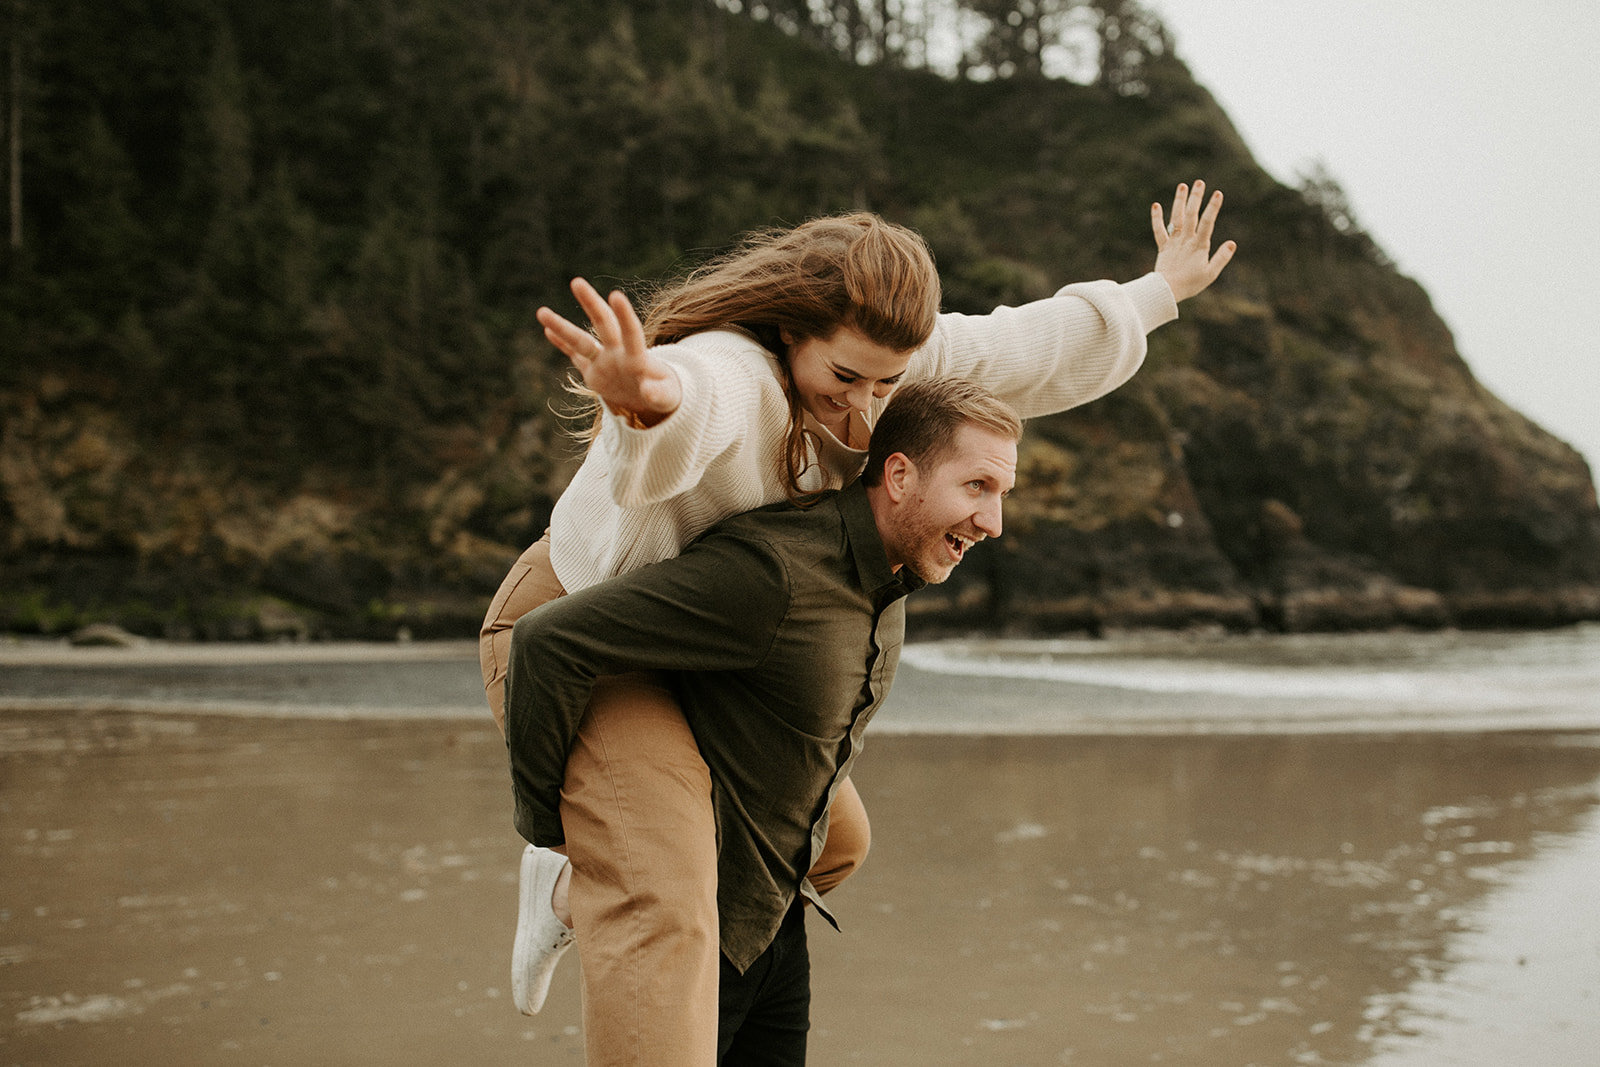 Emily_and_Jeff_Oregon_Coast_Engagement_Dawn_Charles_Photographer-255.jpg